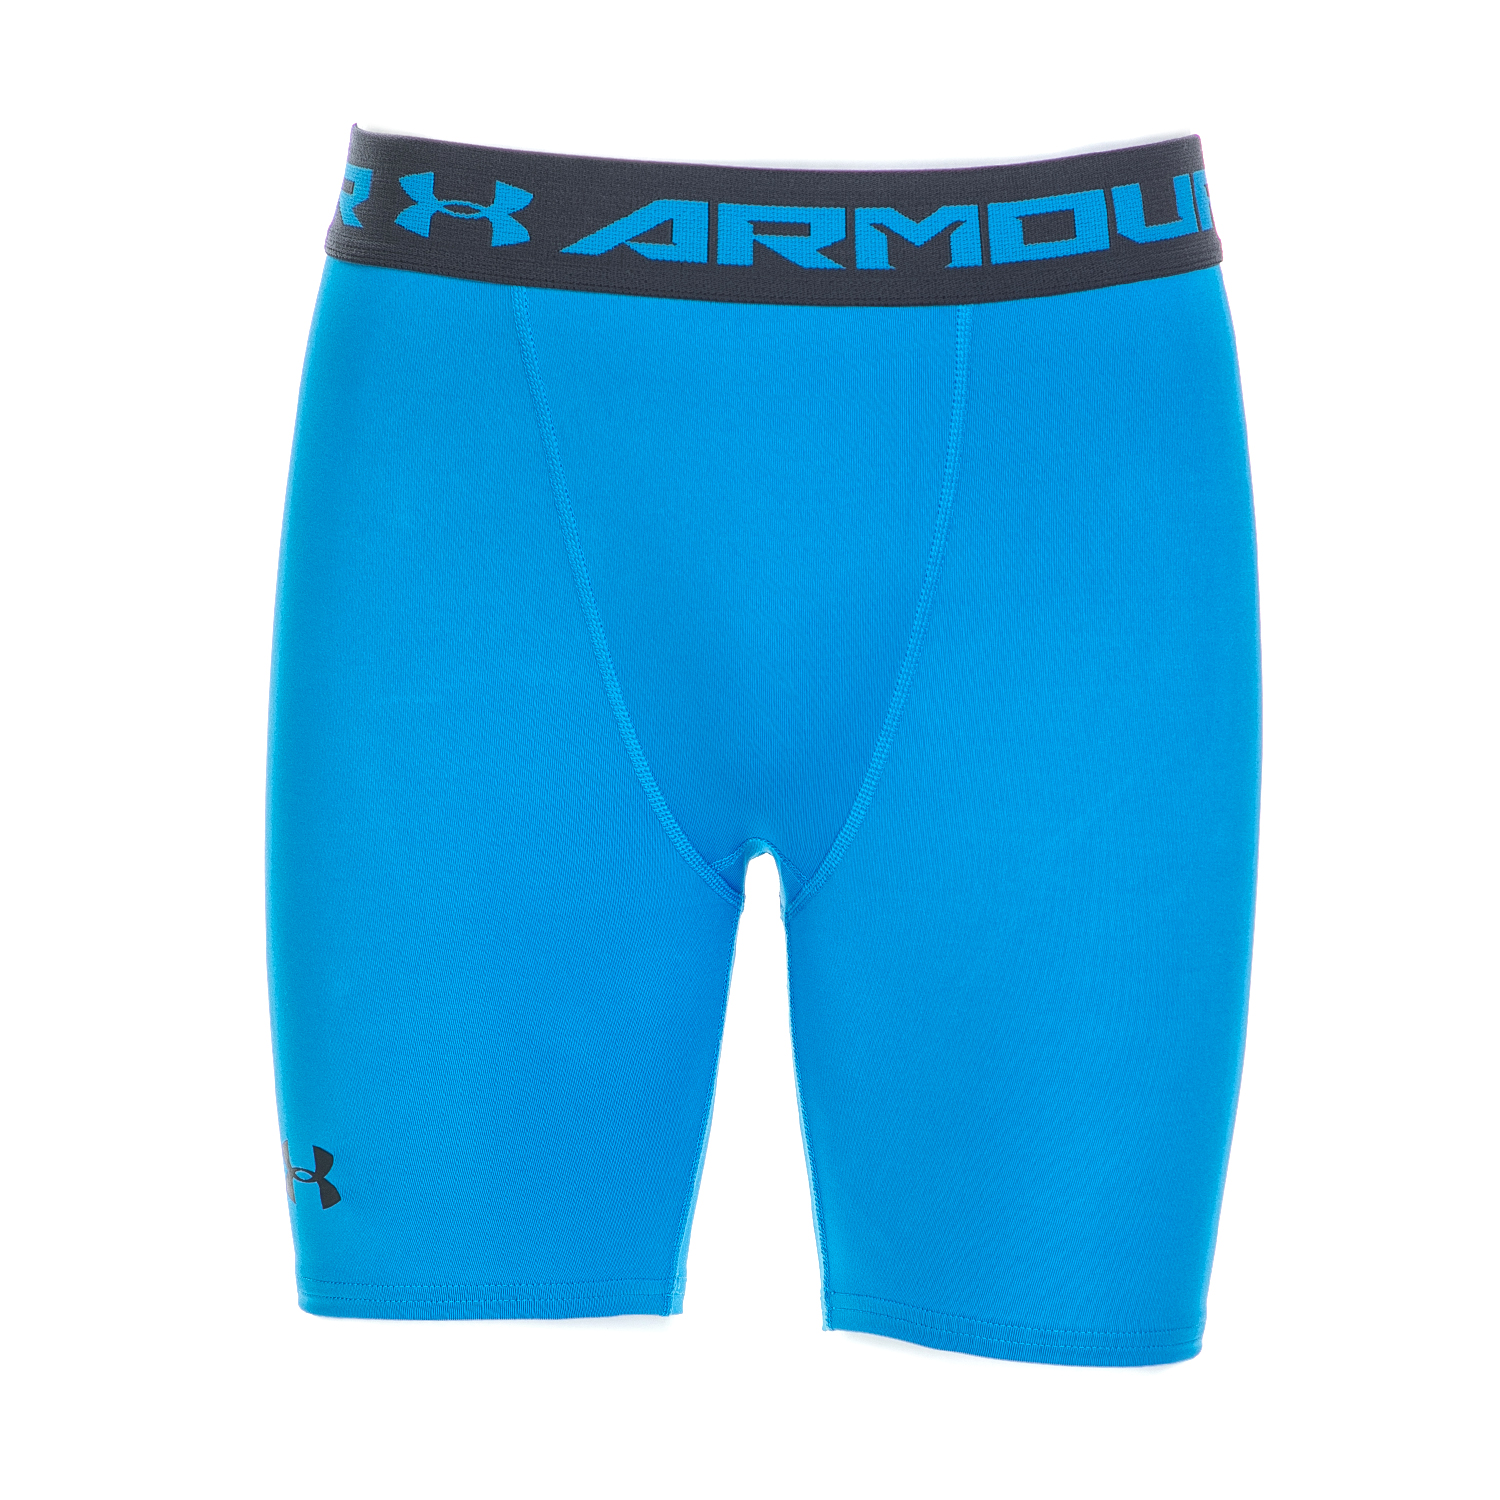 UNDER ARMOUR - Ανδρικό αθλητικό κοντό κολάν Under Armour HG COMP μπλε ανδρικά ρούχα αθλητικά κολάν